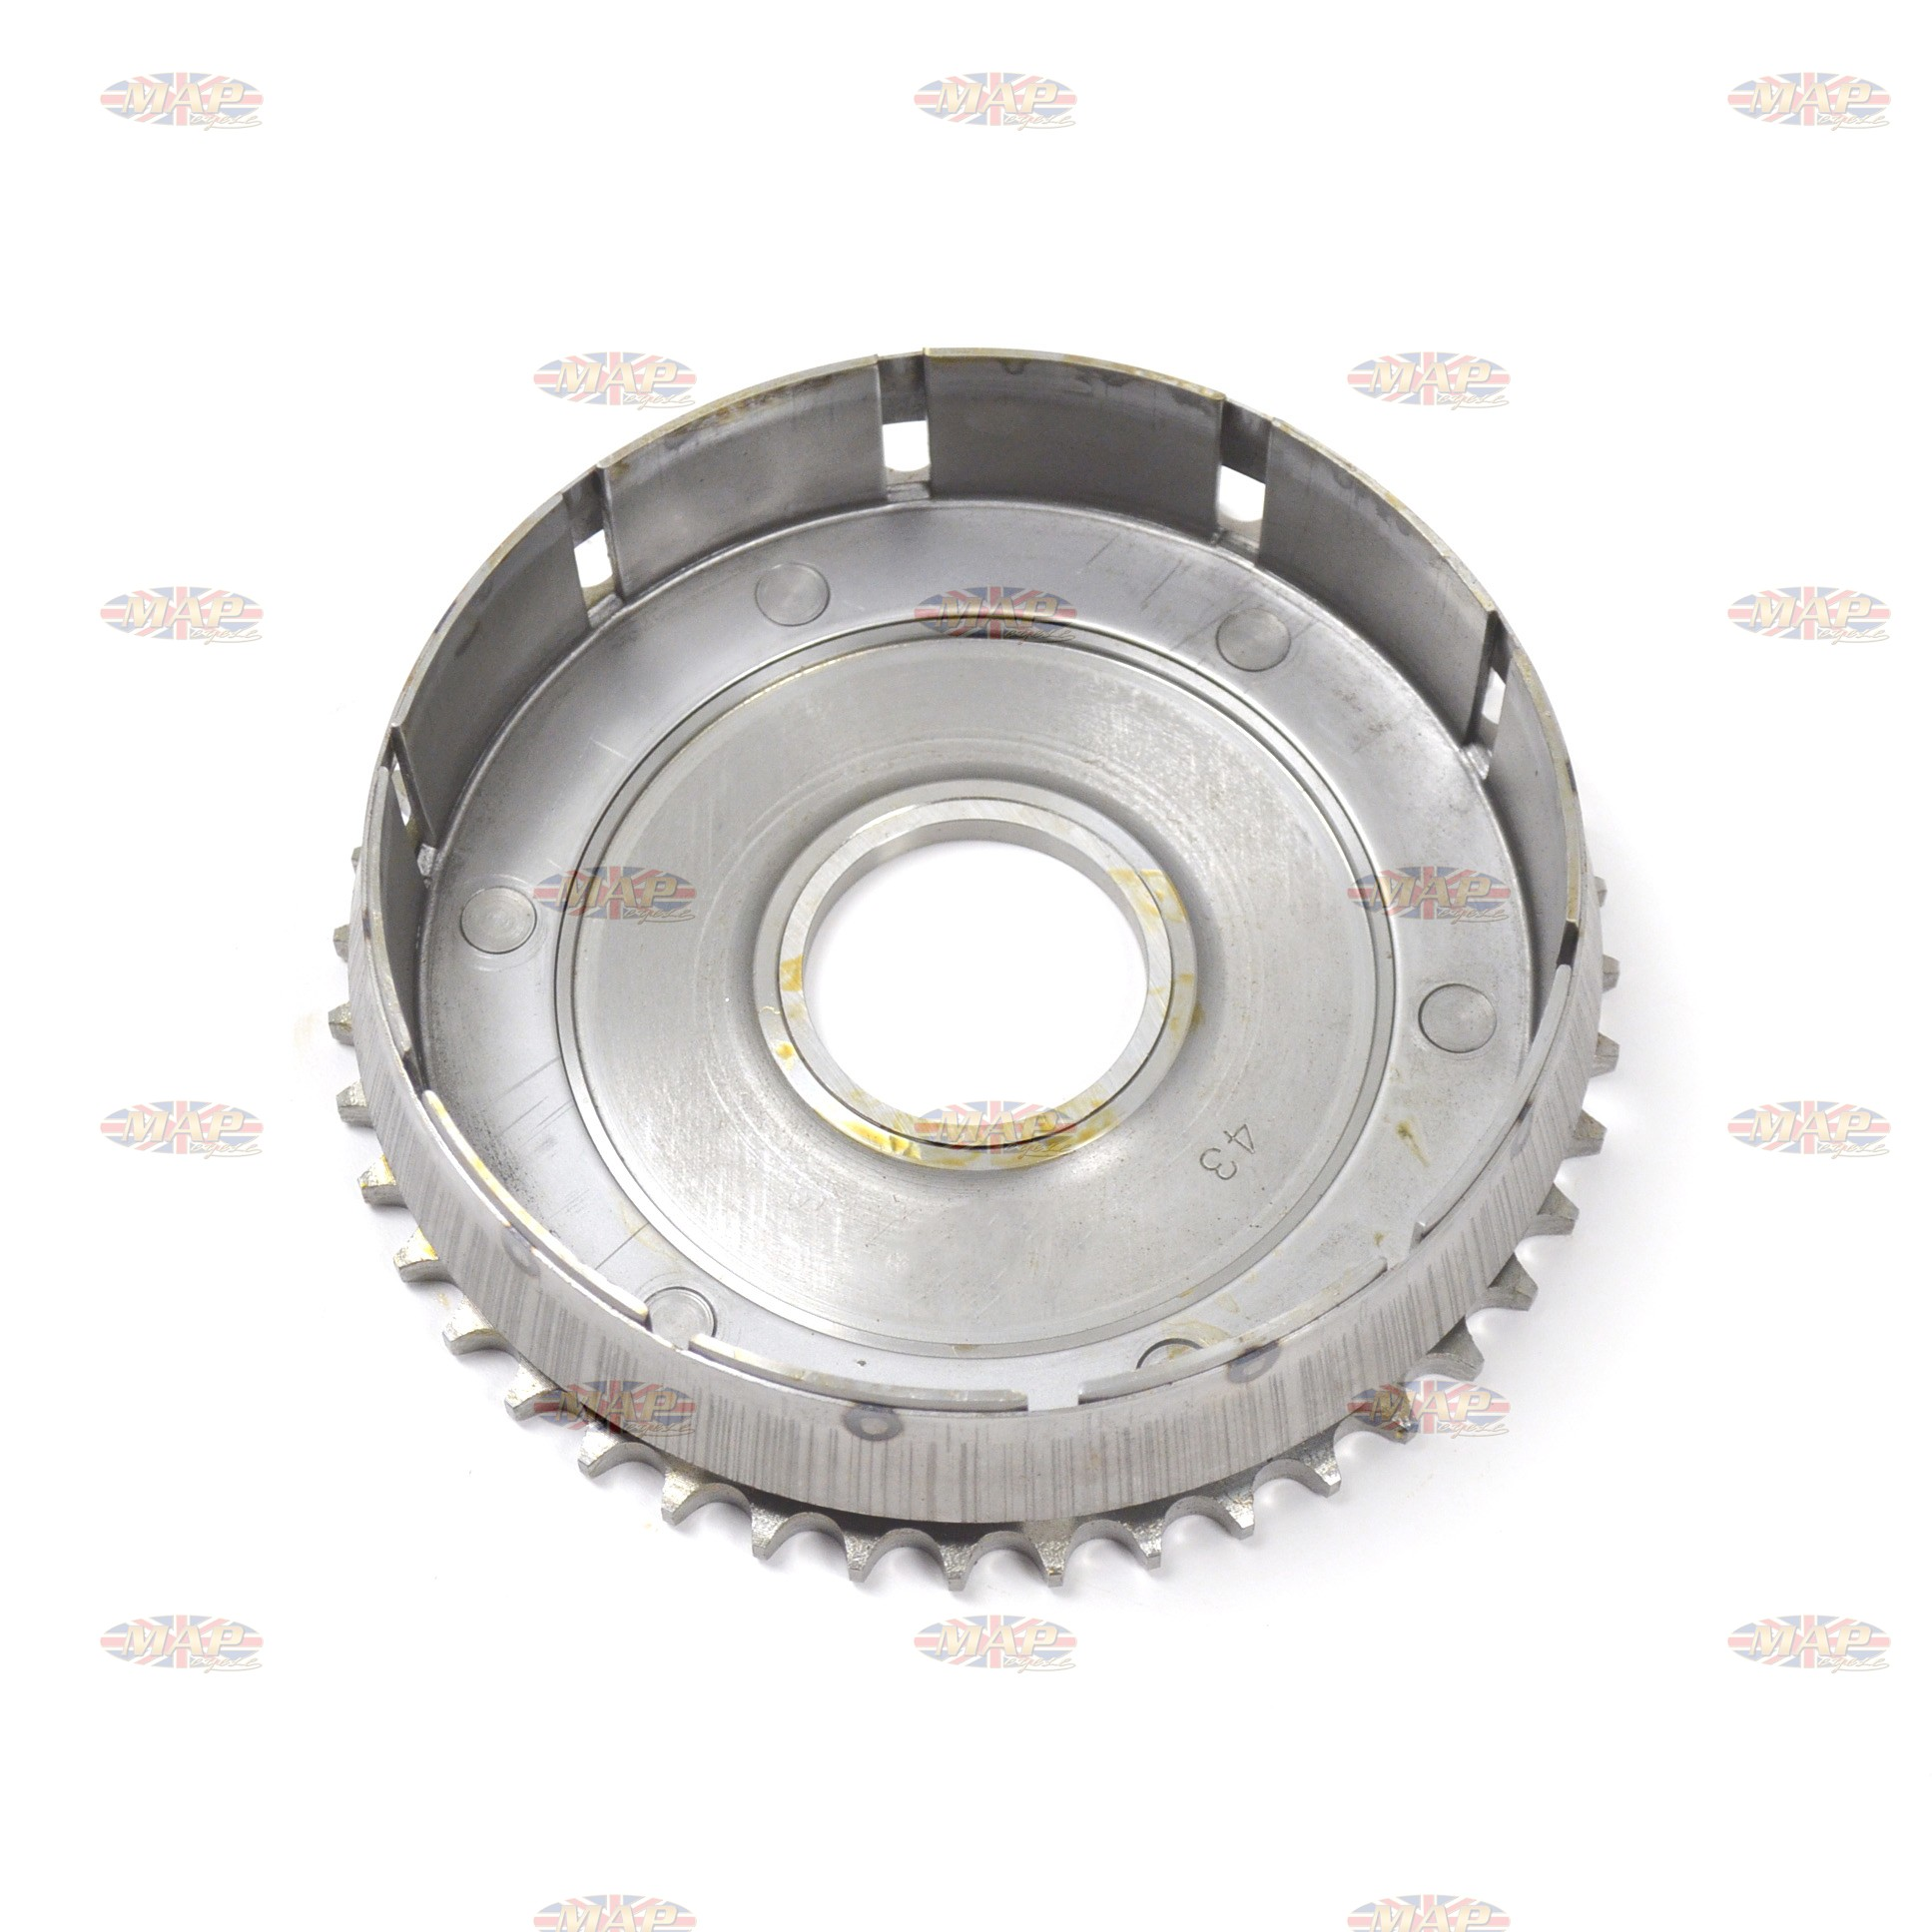 Triumph 500-650cc Pre-Unit, Reproduction, Clutch Basket, Chainwheel 57-1549/P